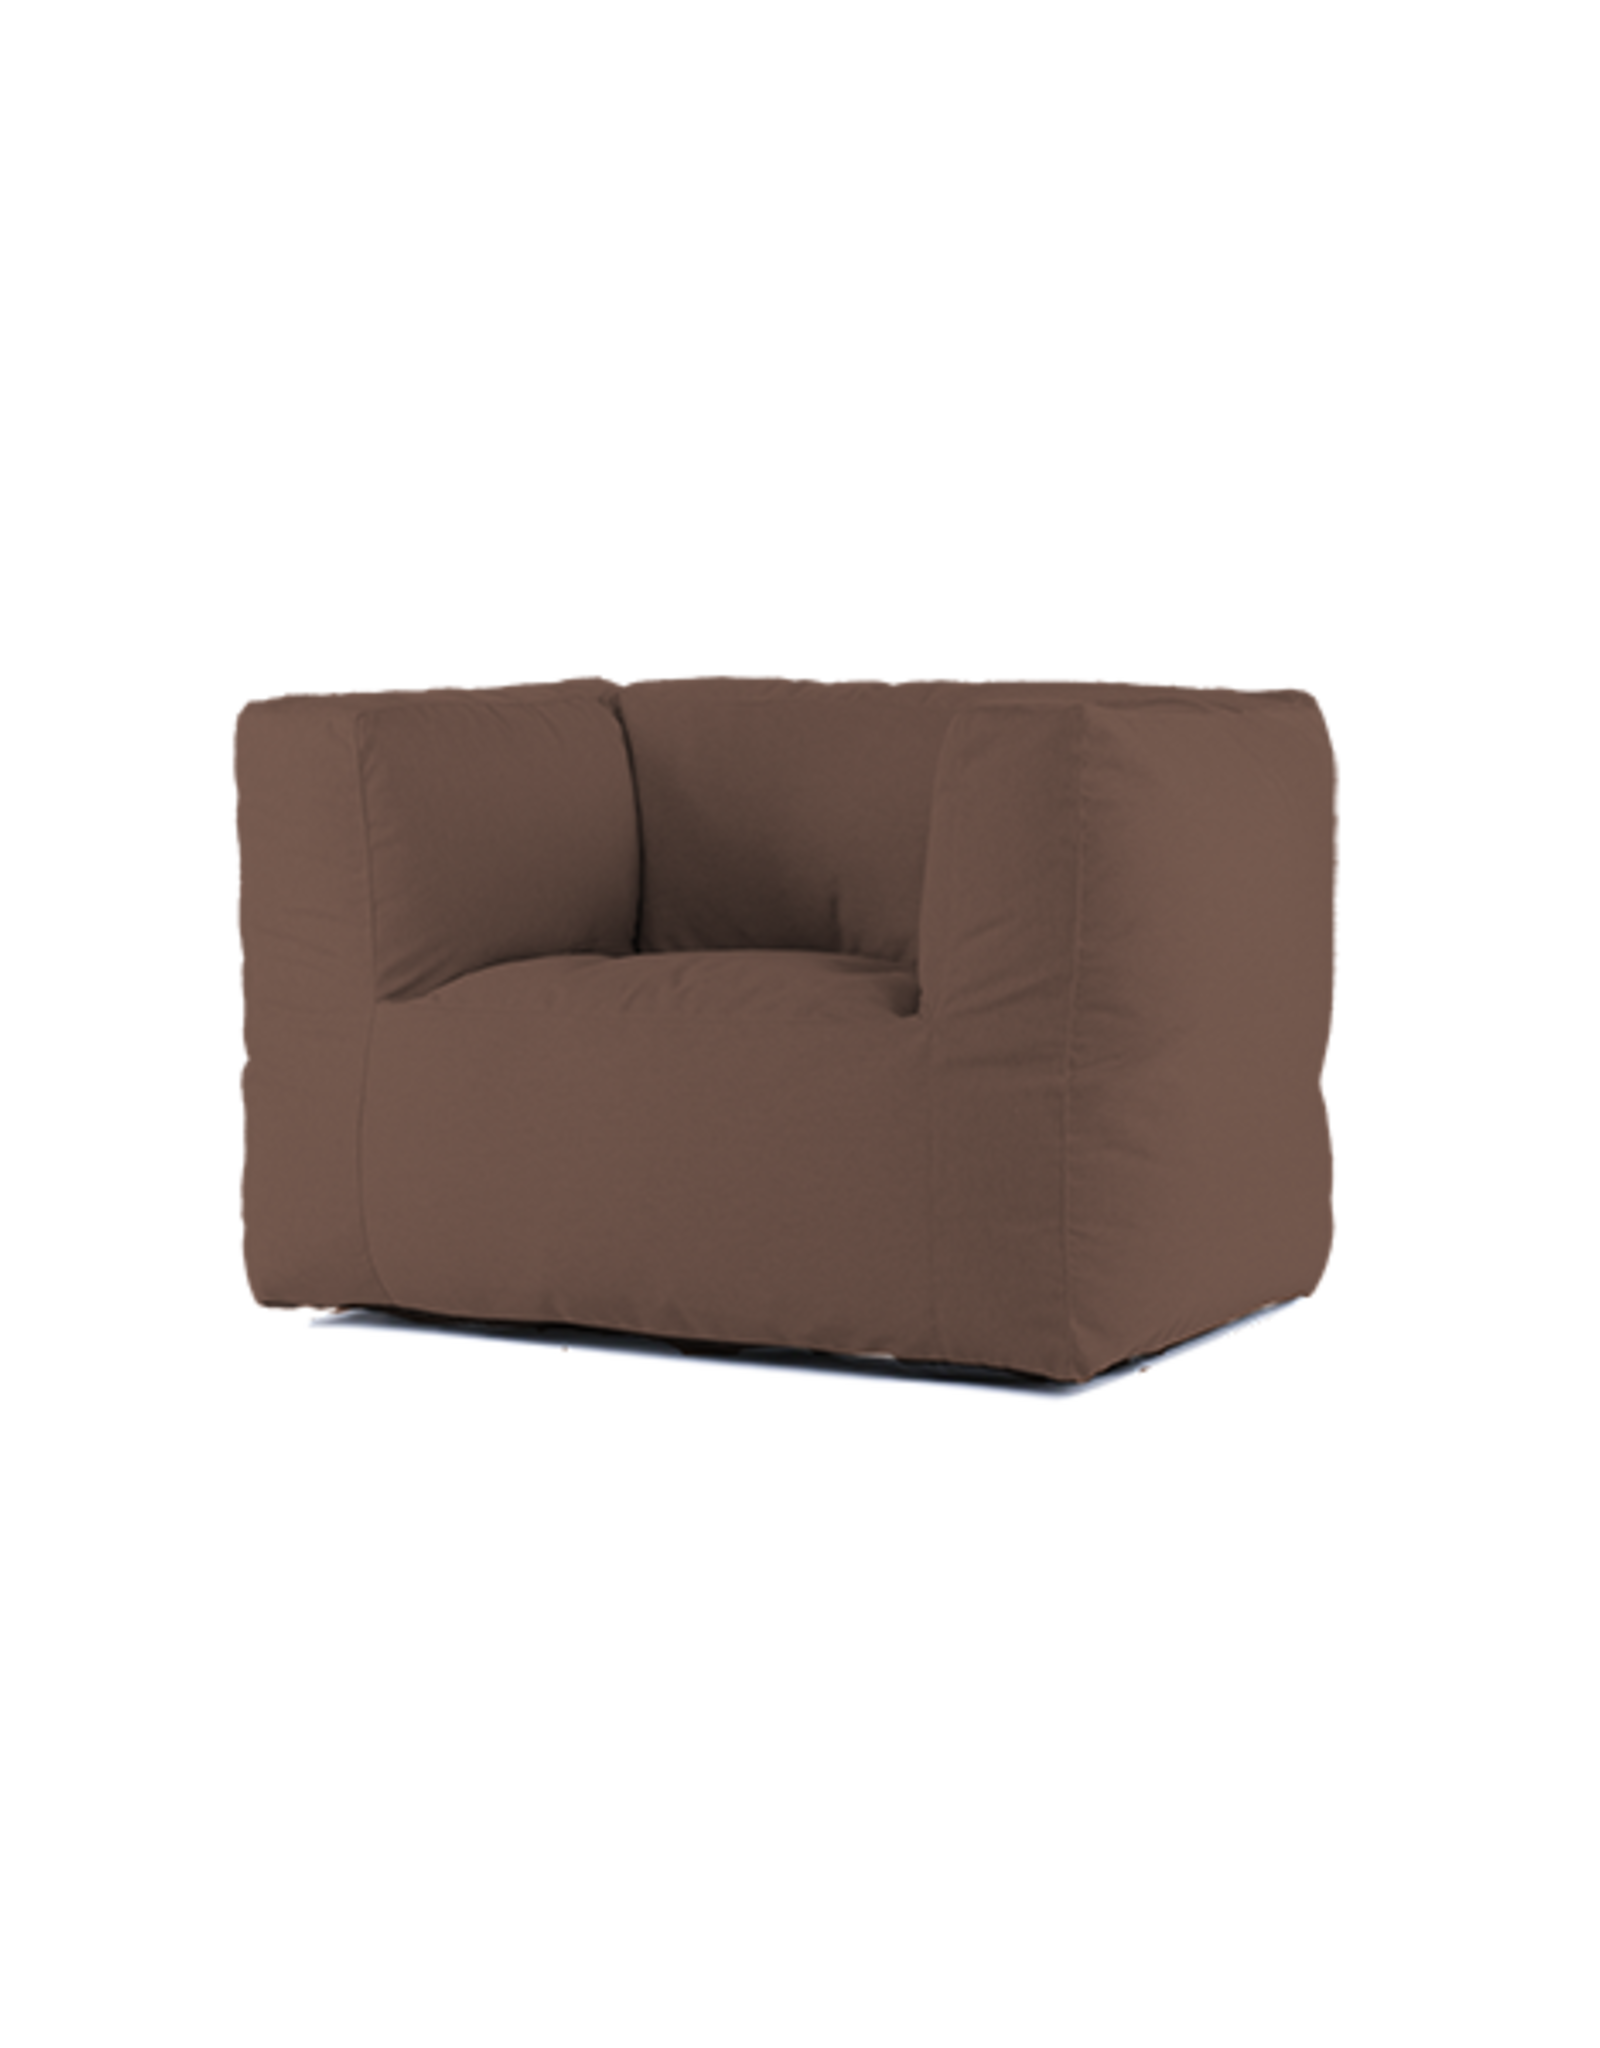 Bryck Bryck - chair - Ecollection - Brown